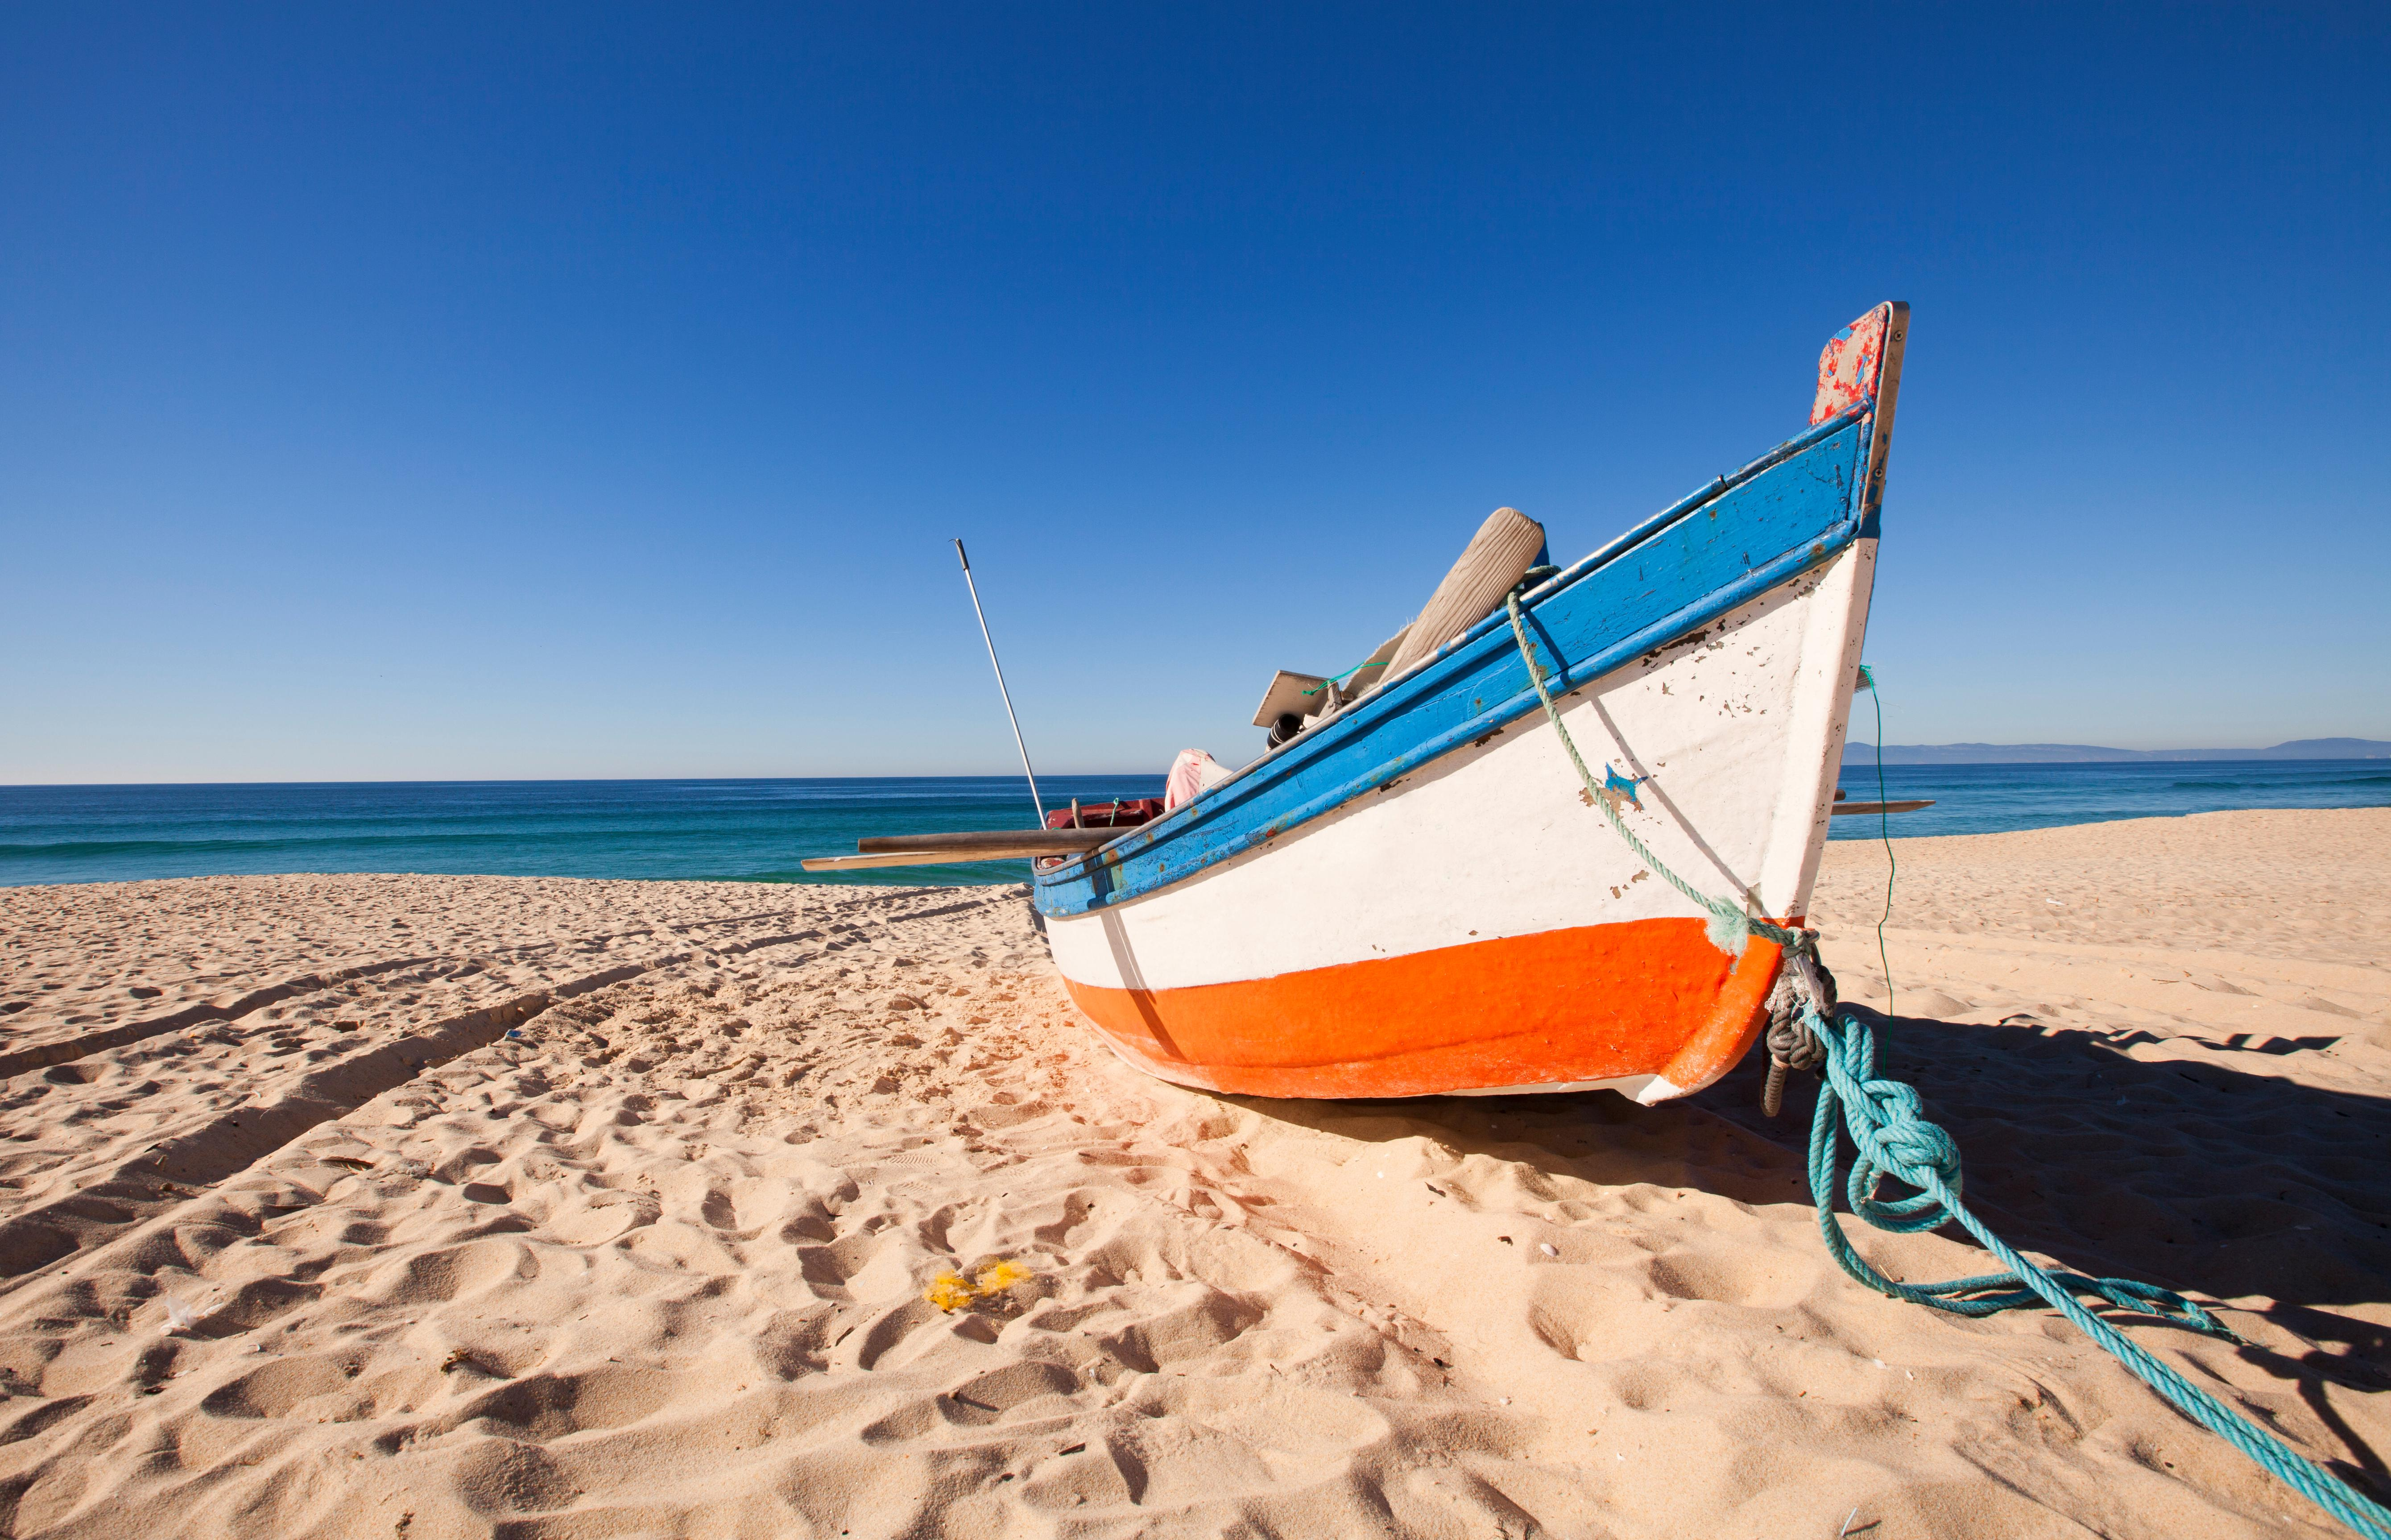 25 of the best beaches in Europe